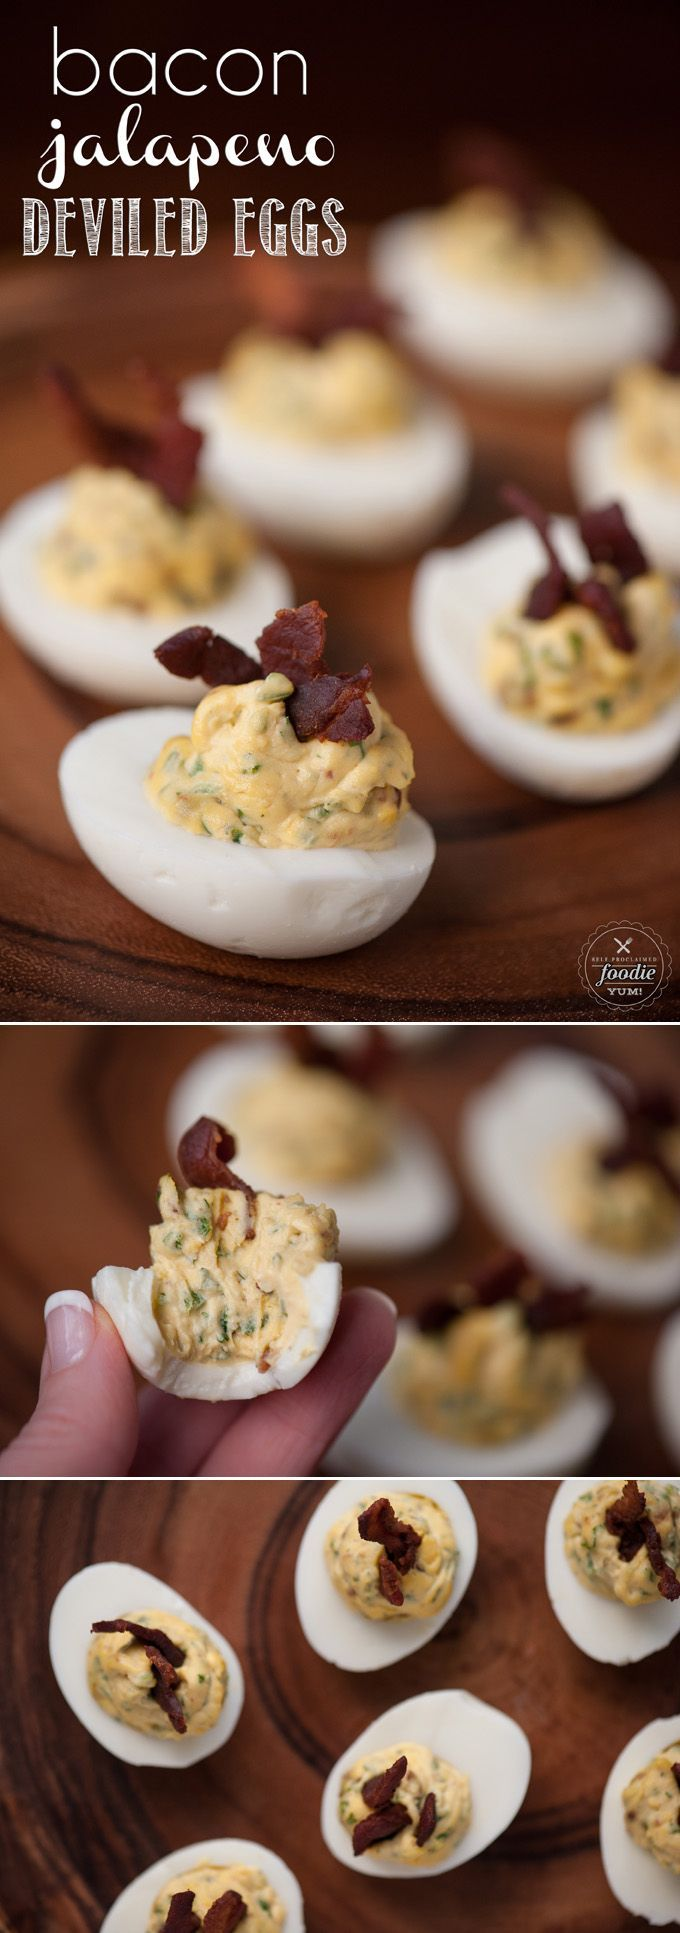 Bacon Jalapeño Deviled Eggs are a spicy two bite appetizer that people love, especially as game day grub or during a party. #deviledeggs #bacon #jalapeno #baconjalapeno